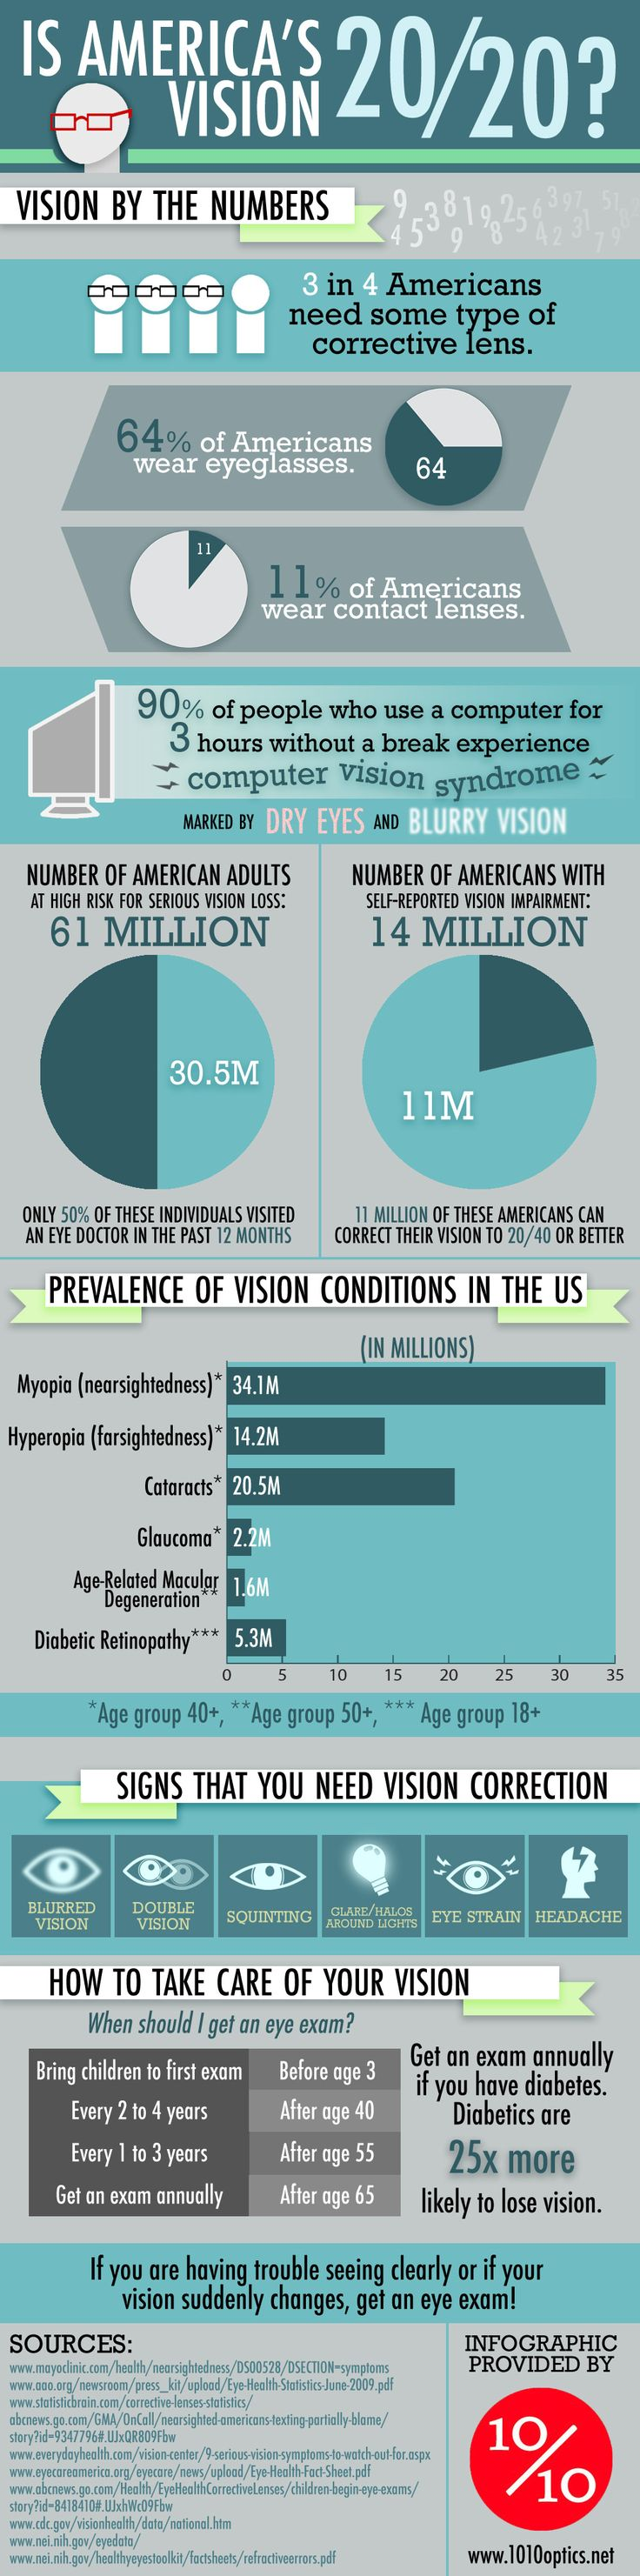 Interesting infographic about Vision in the US. I wonder if anyone has made a UK version?